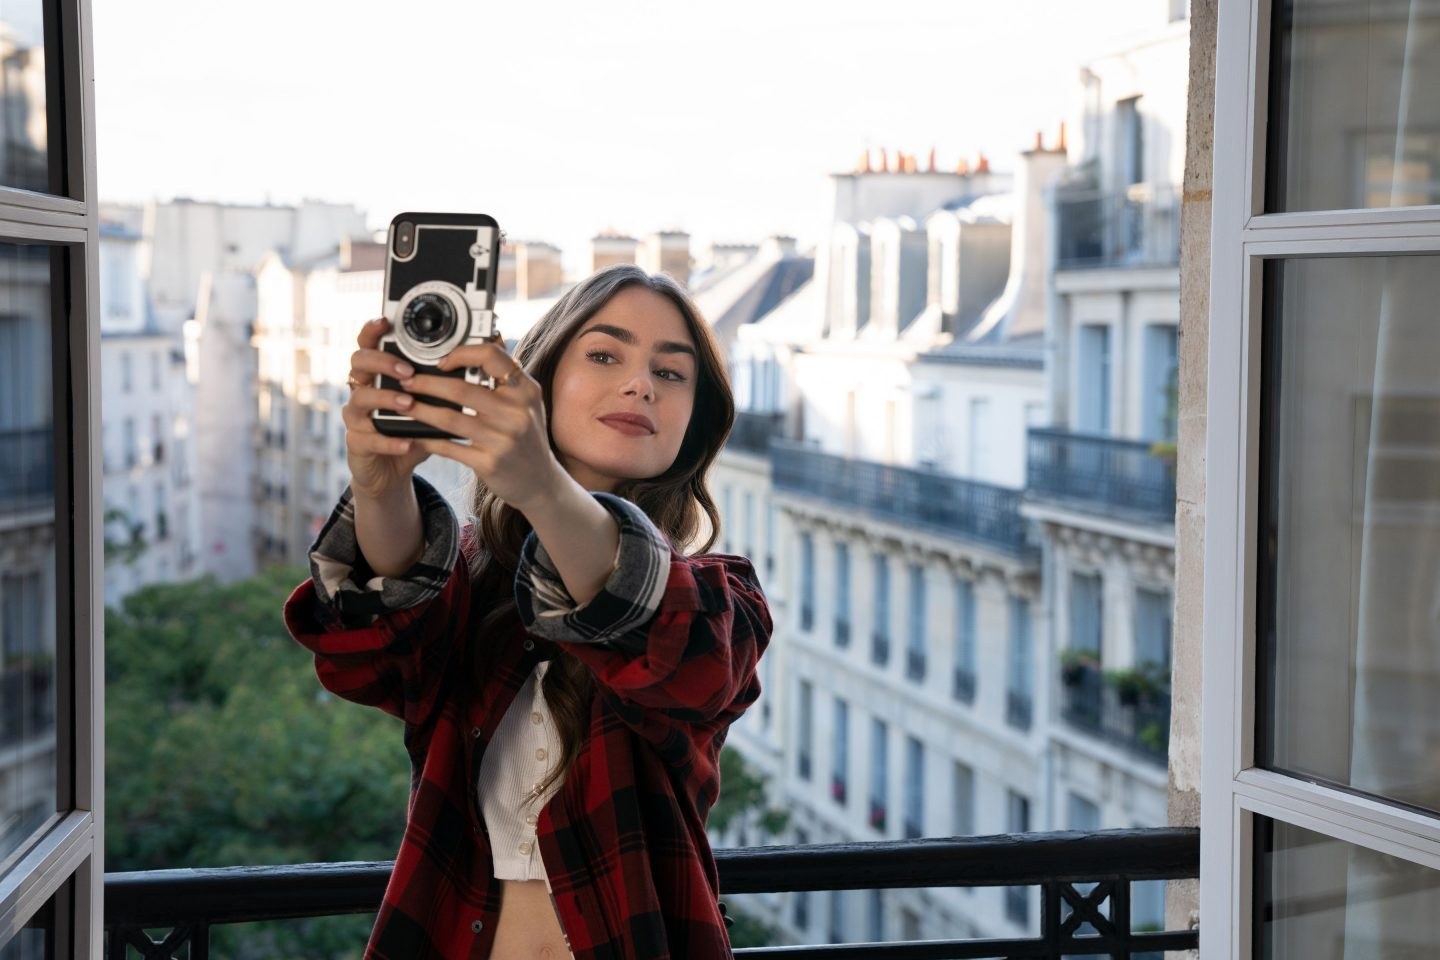 emily in paris, netflix show, netflix series, view from her apartment in paris